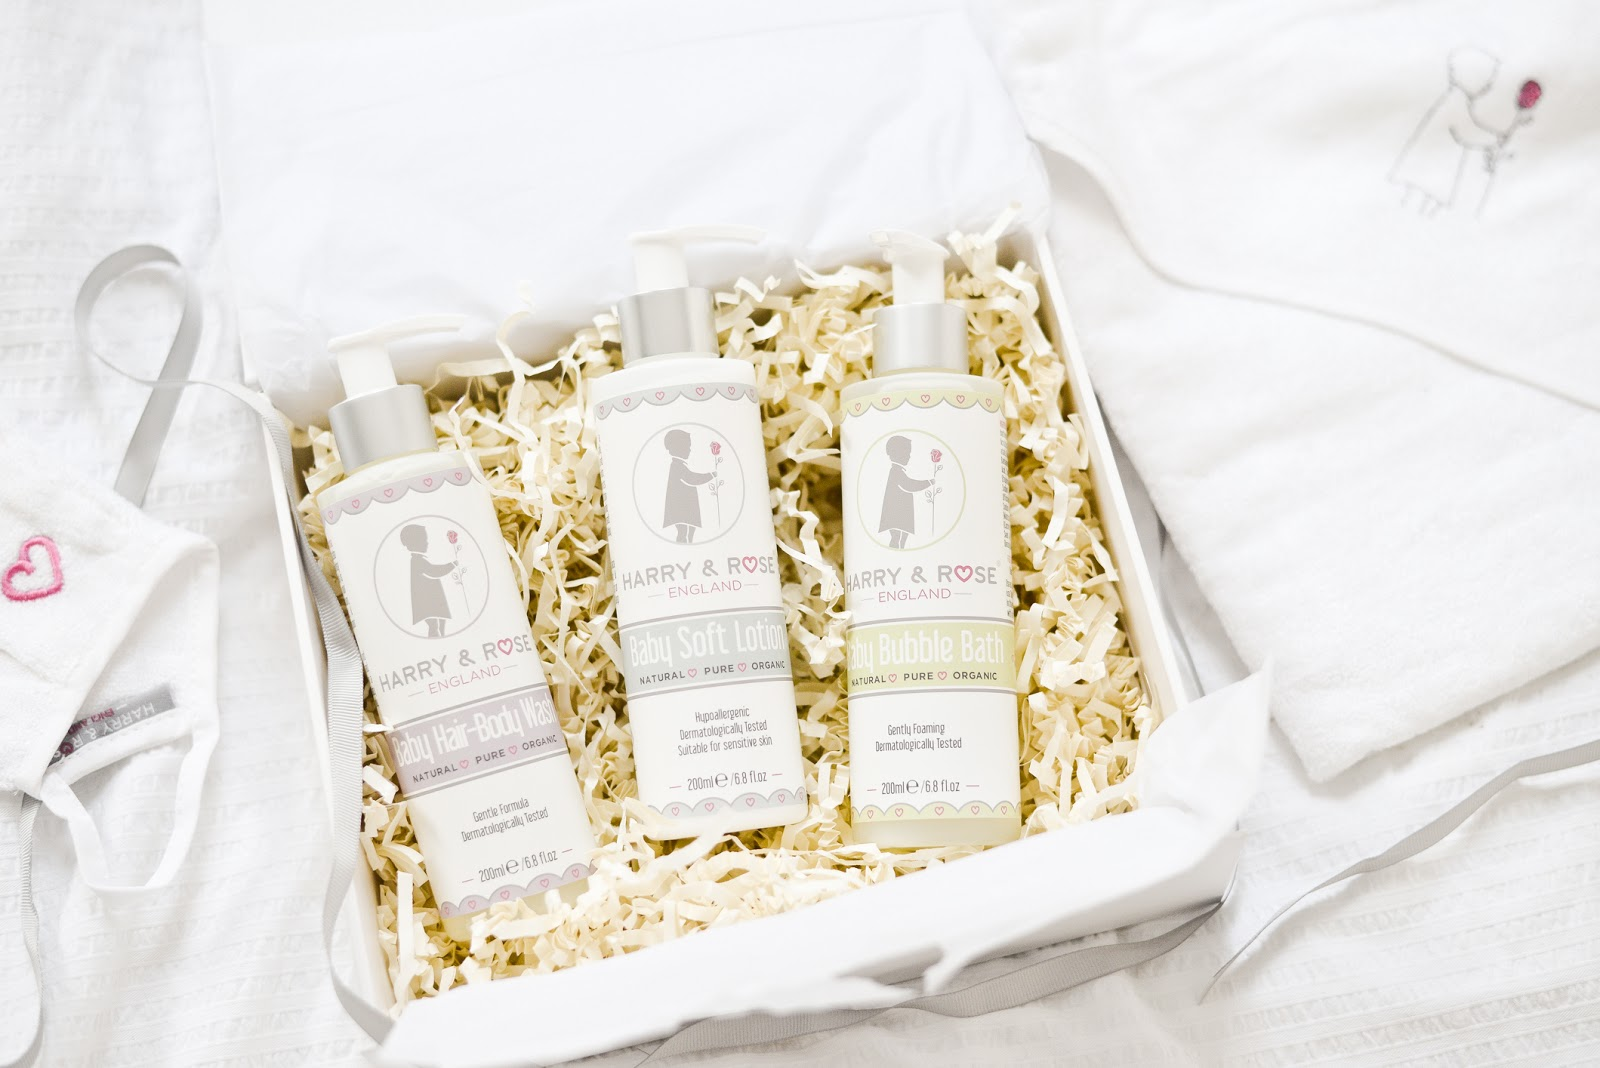 Harry & Rose baby skincare